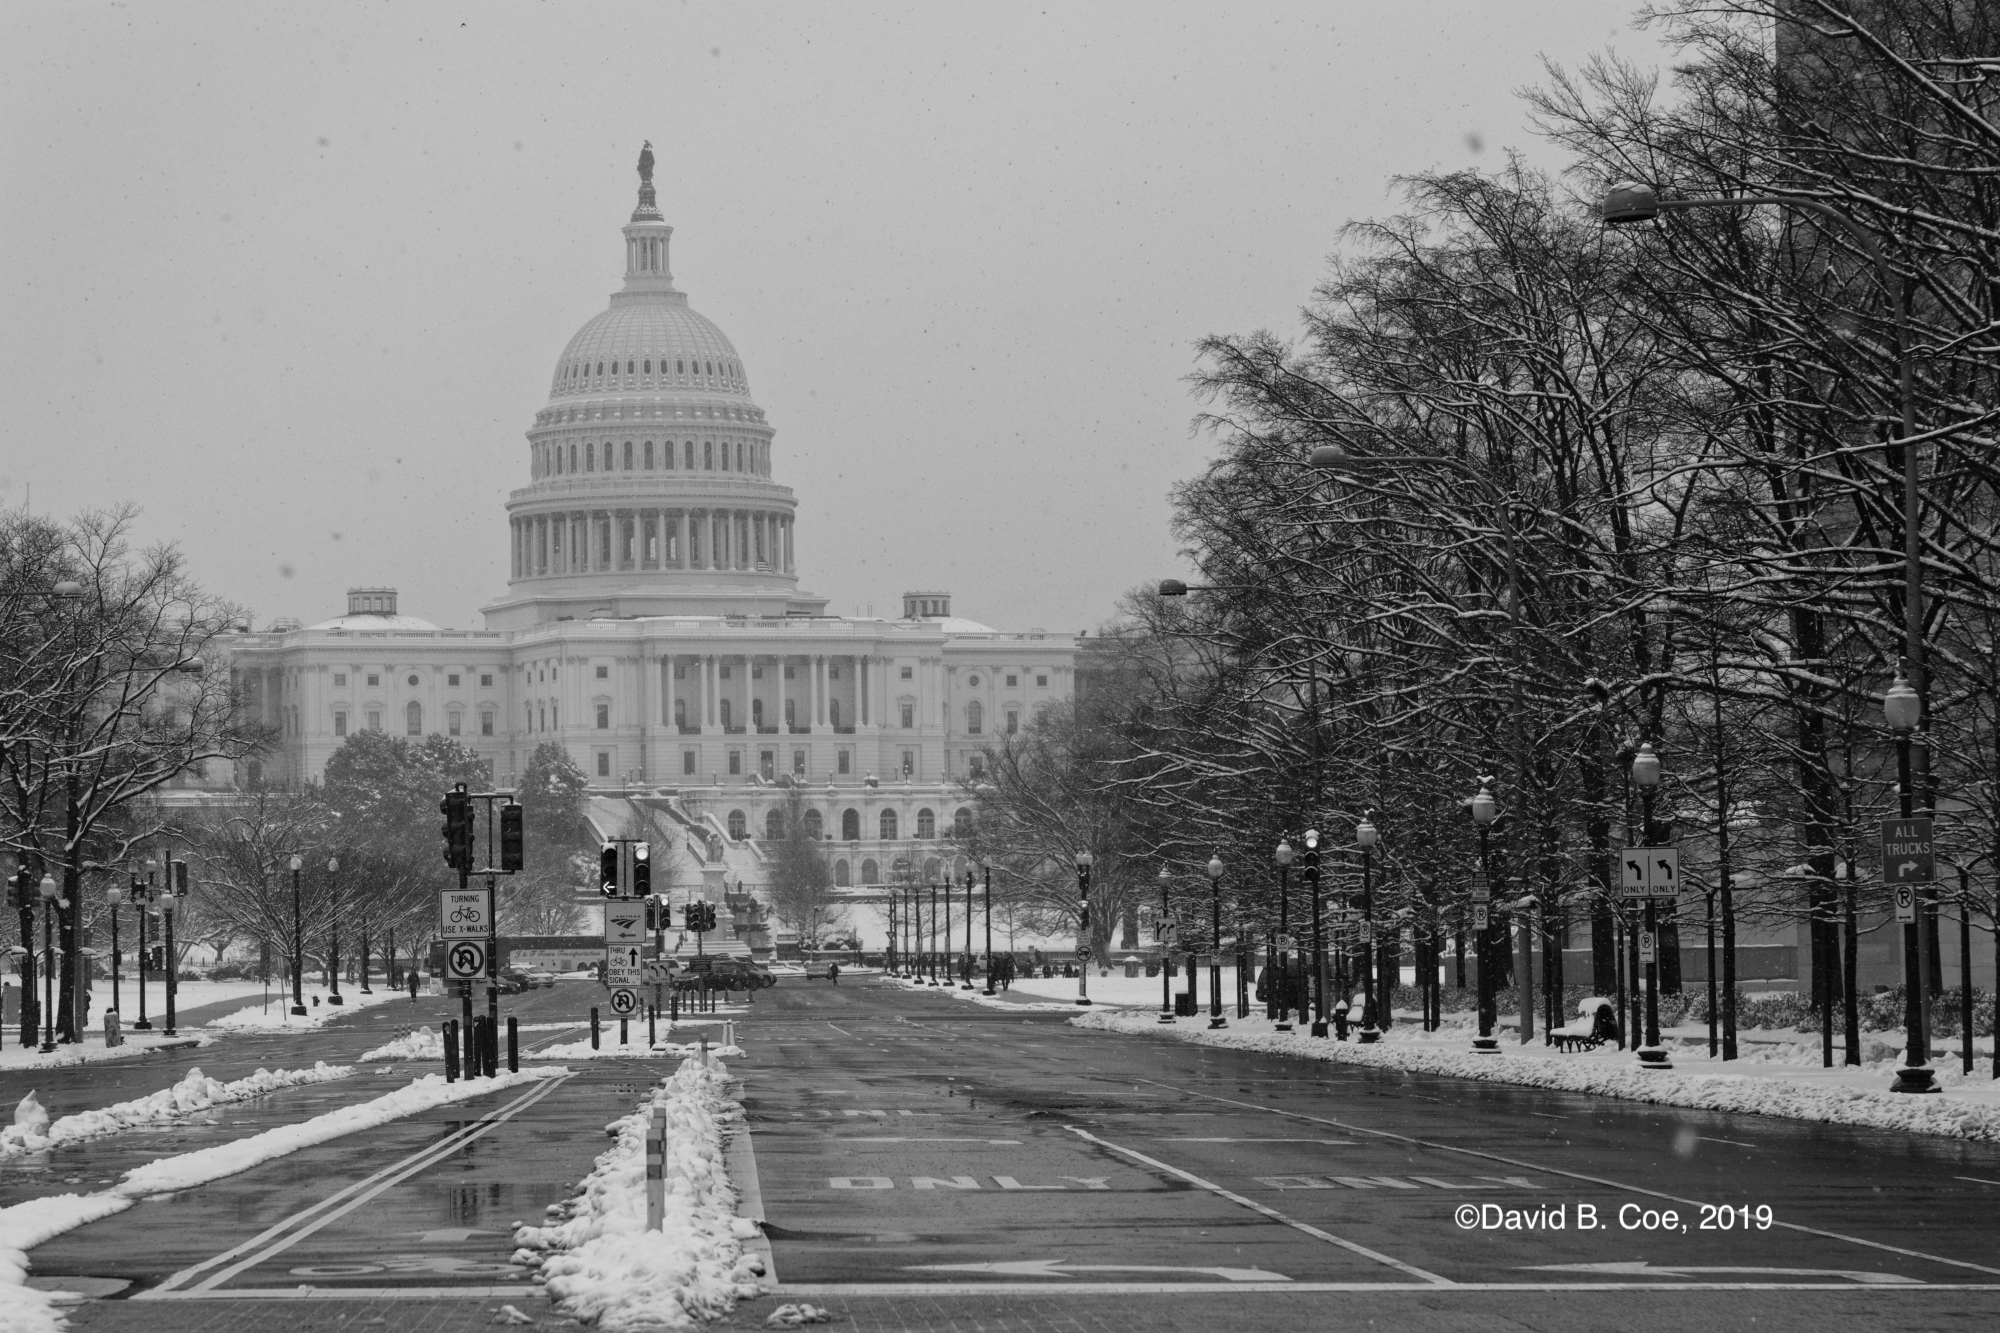 U.S. Capitol in Snow, by David B. Coe